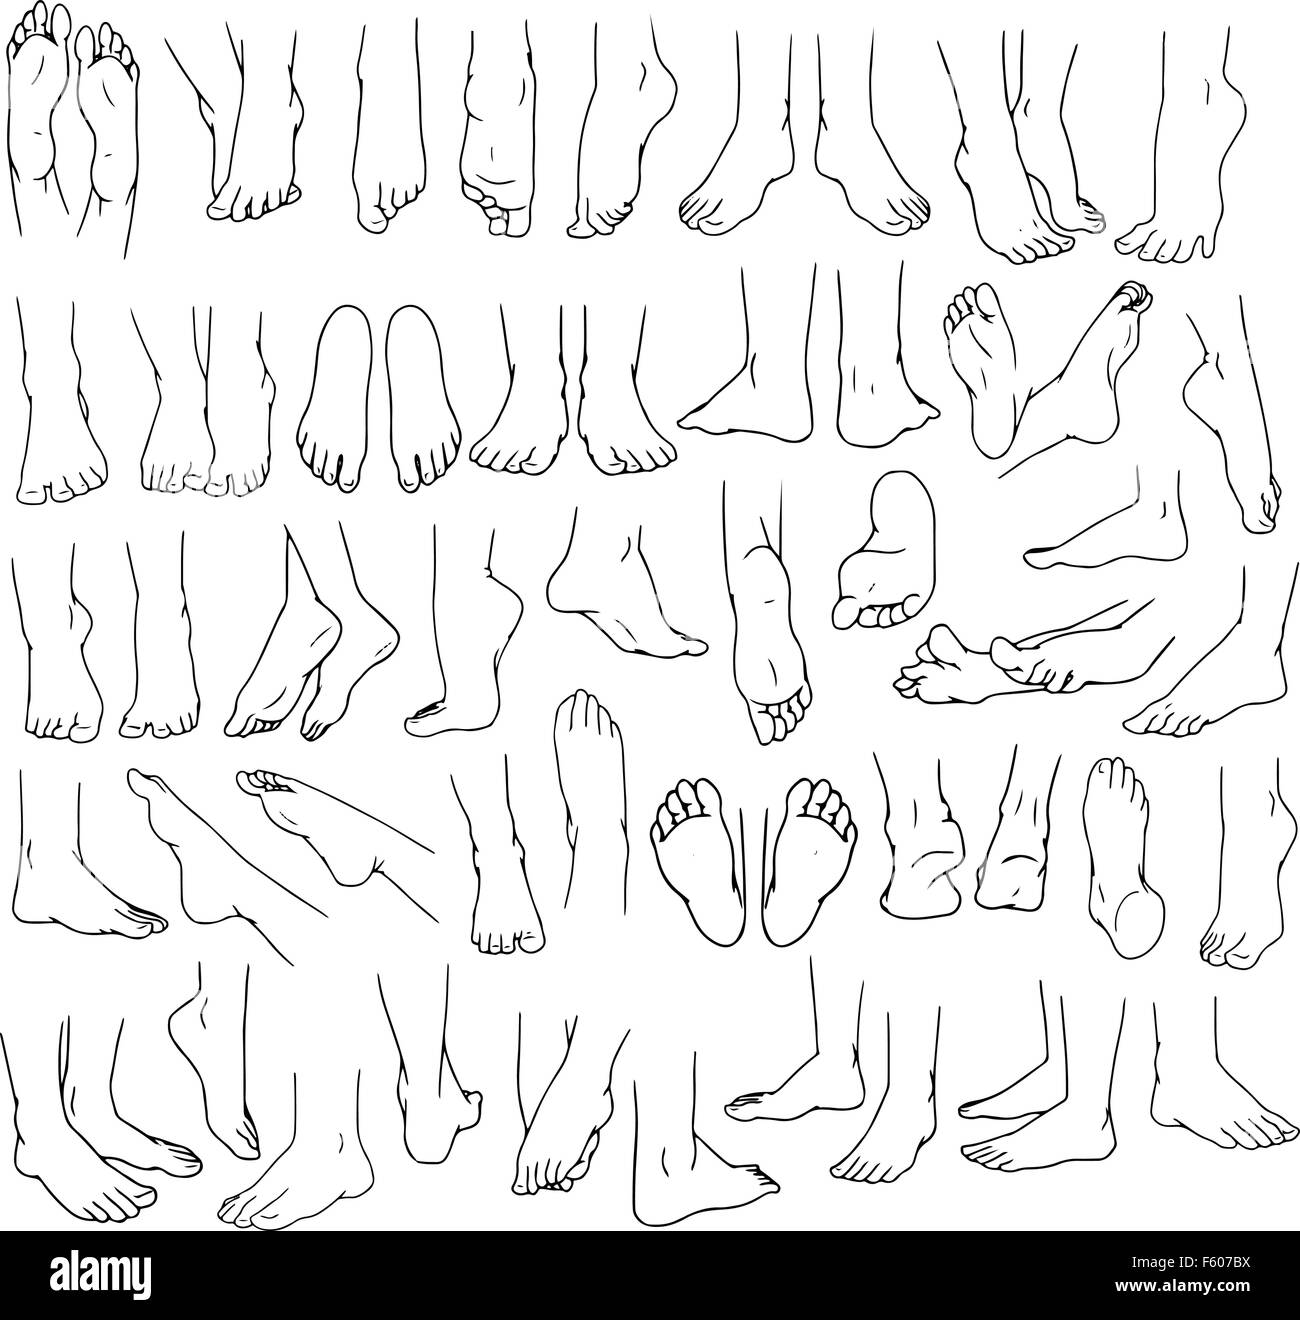 Vector illustrations lineart pack of human feet in various gestures. - Stock Vector